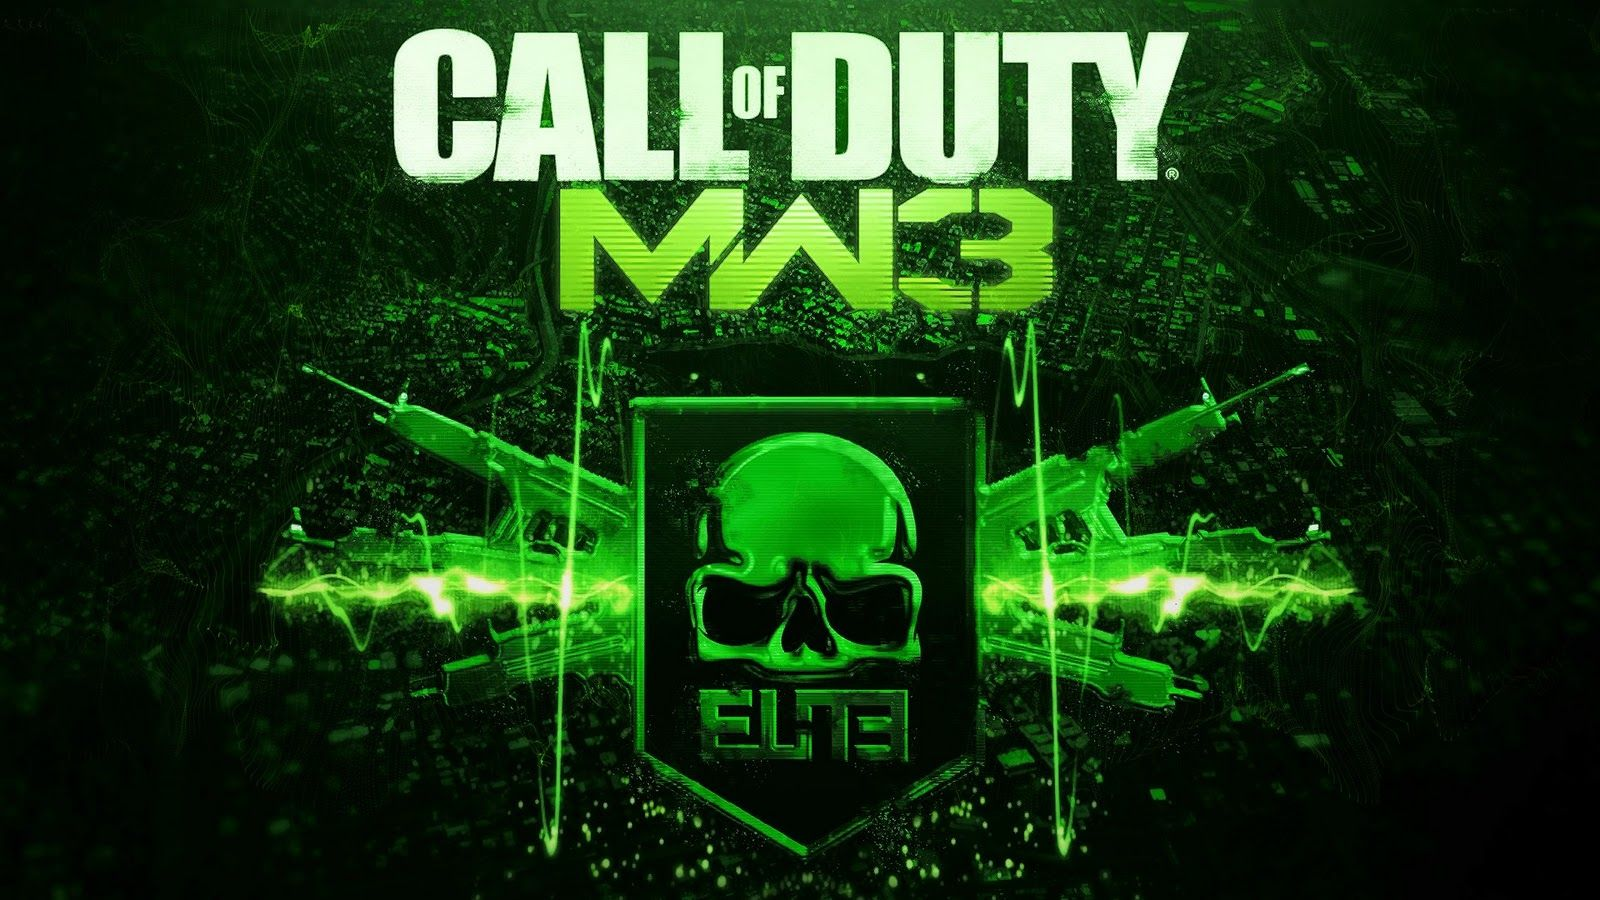 Call Of Duty Modern WarFare 3 Theme Image Facebook Timeline